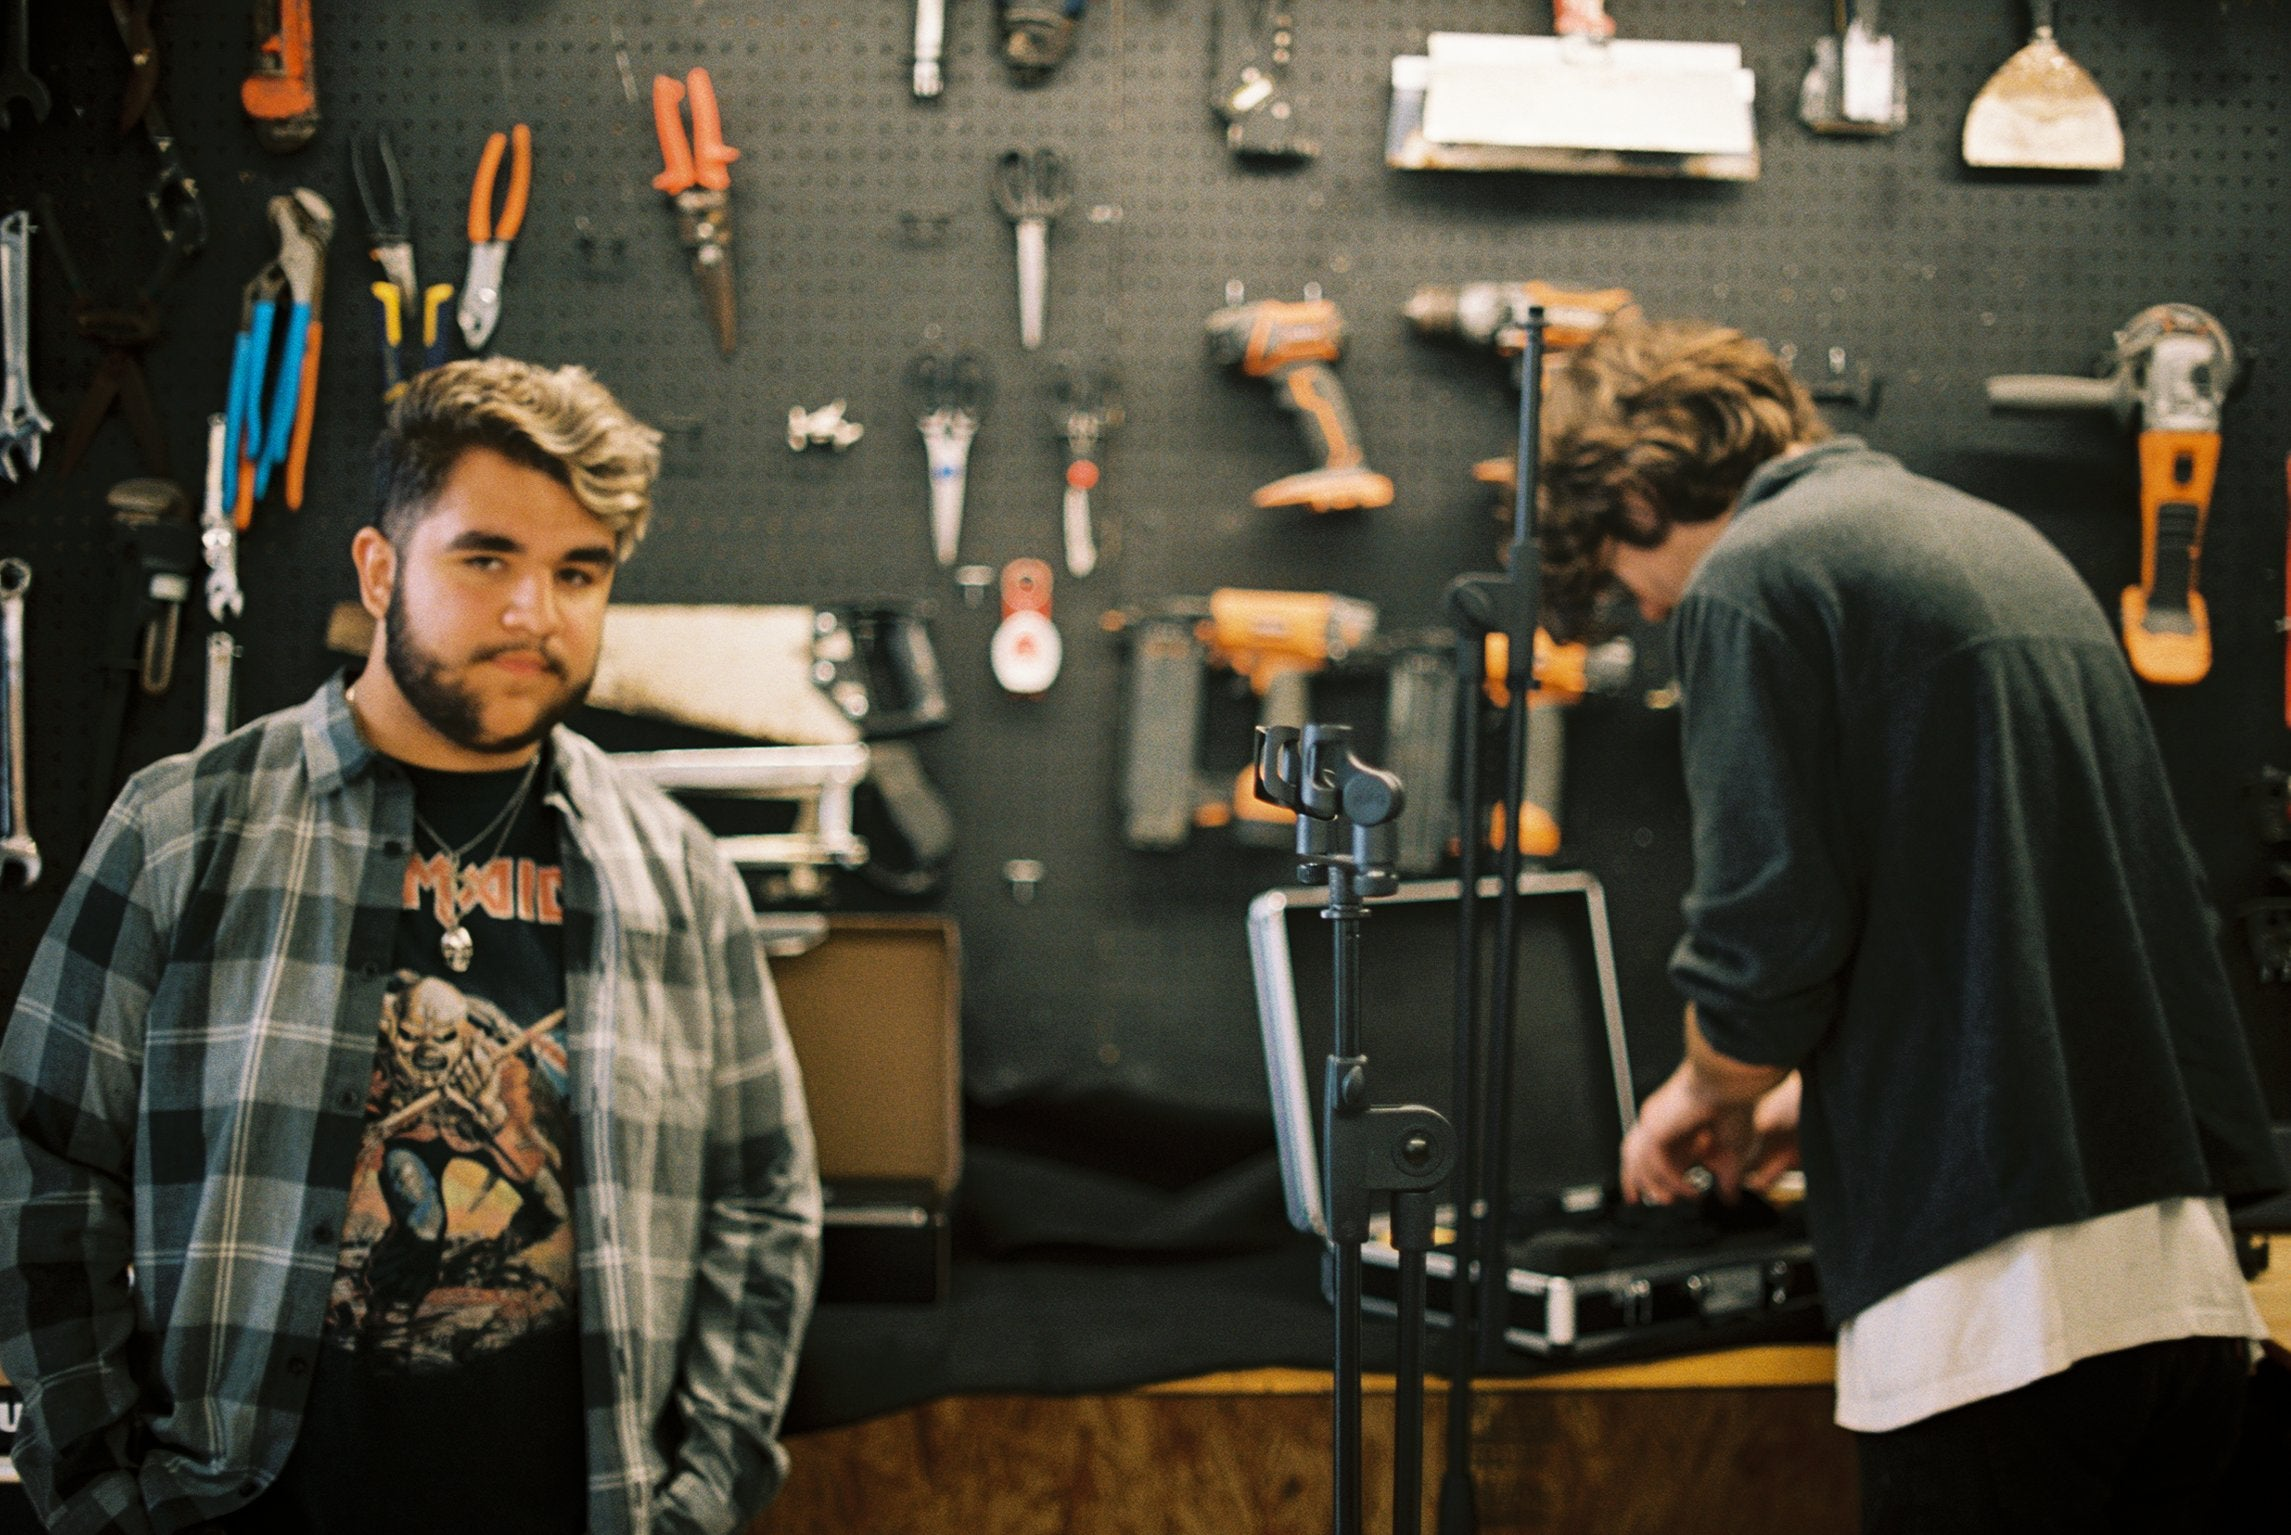 musicians standing in front of a wall of tools.